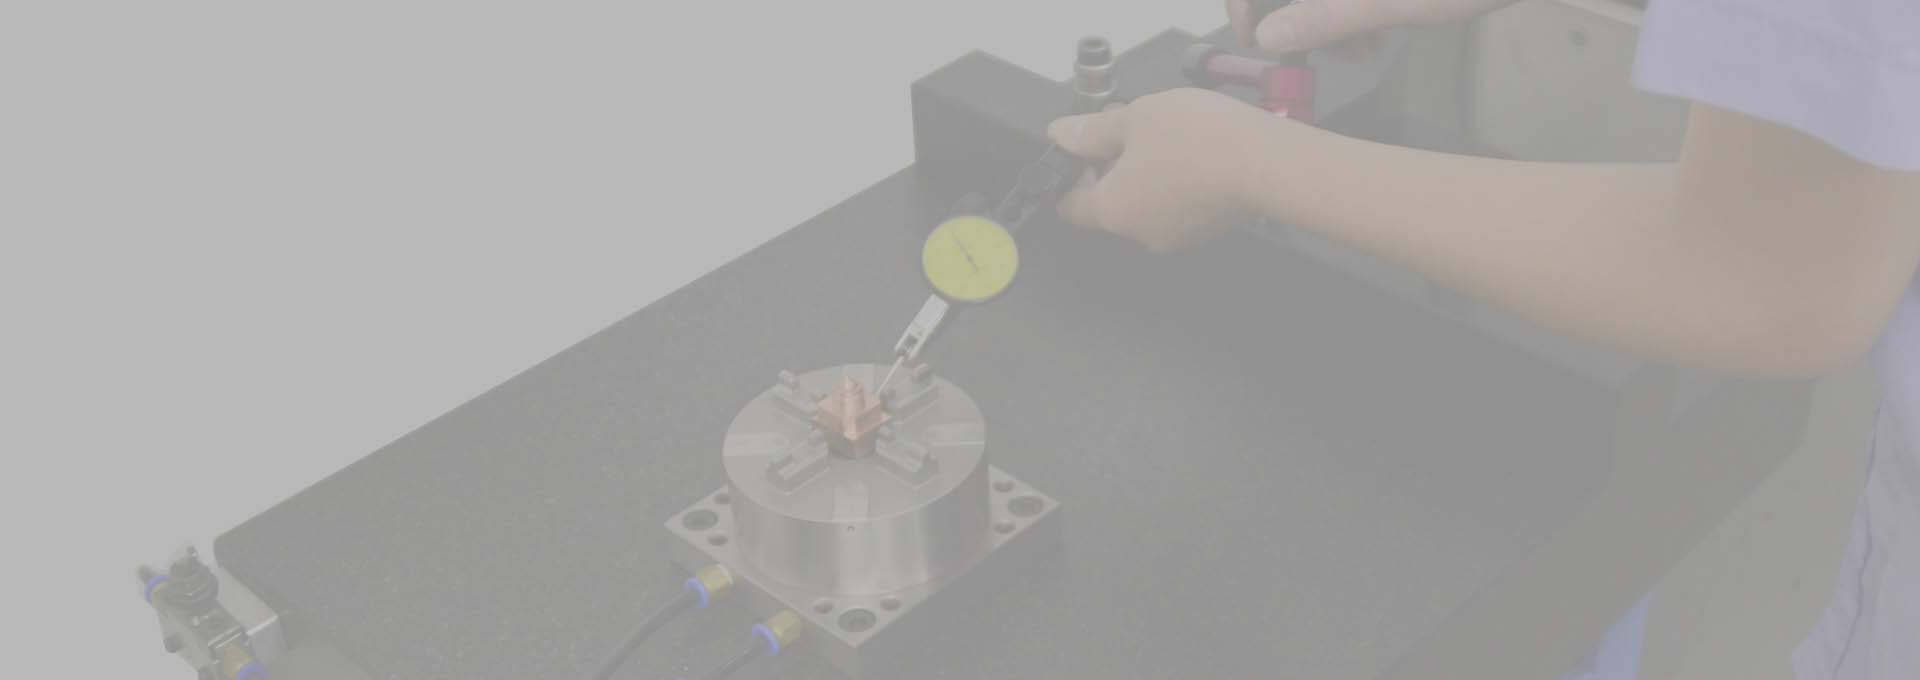 plastic injection mold inspection